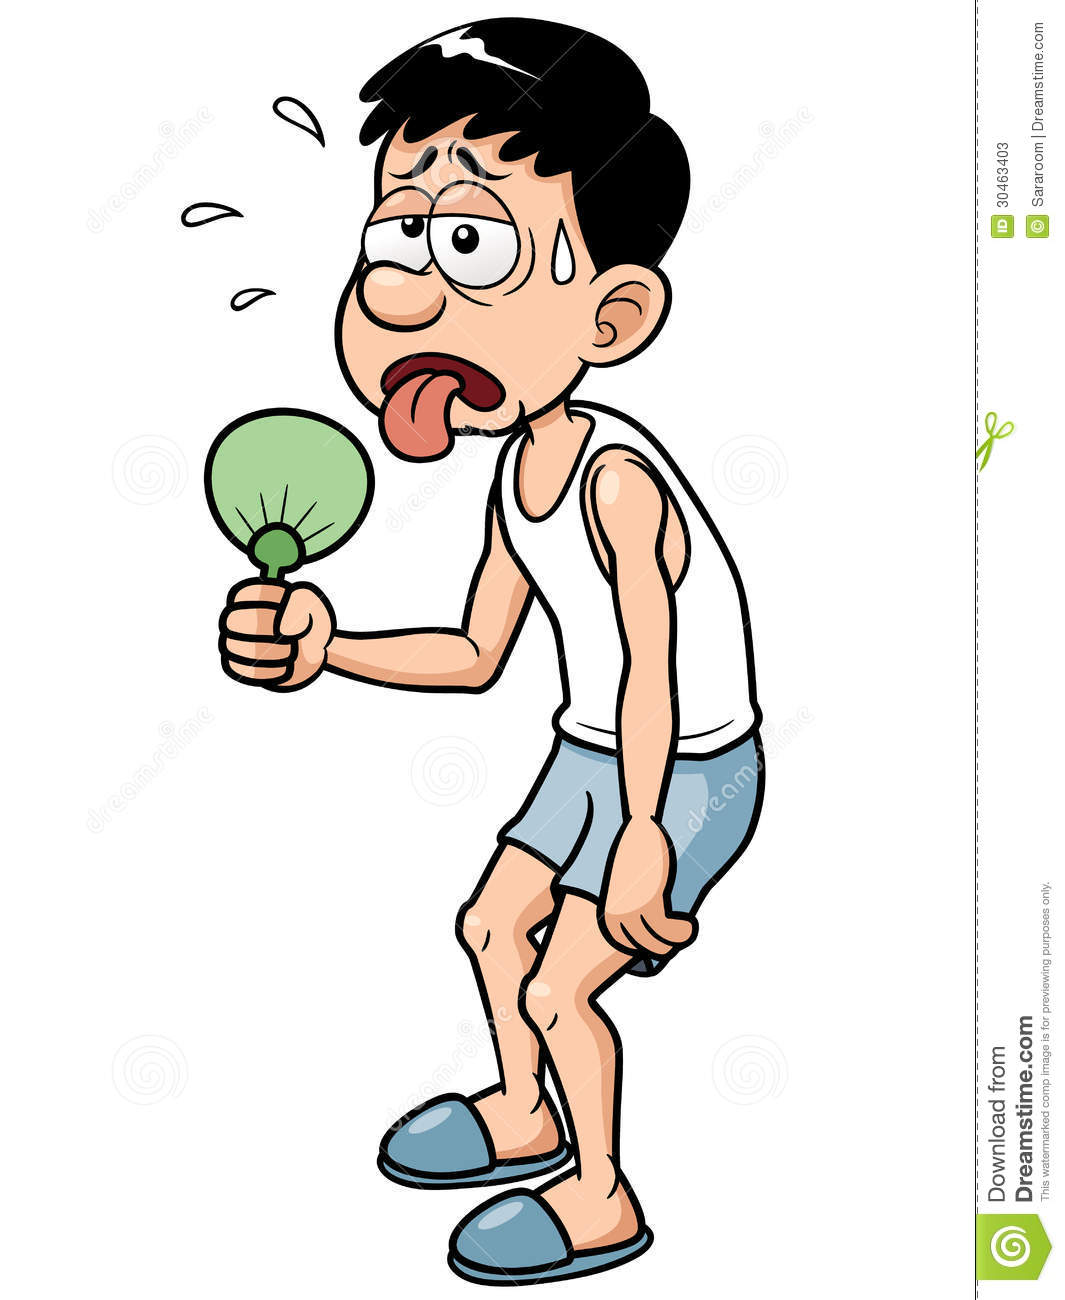 Cartoon Man In Hot Weather Stock Photos - Image: 30463403